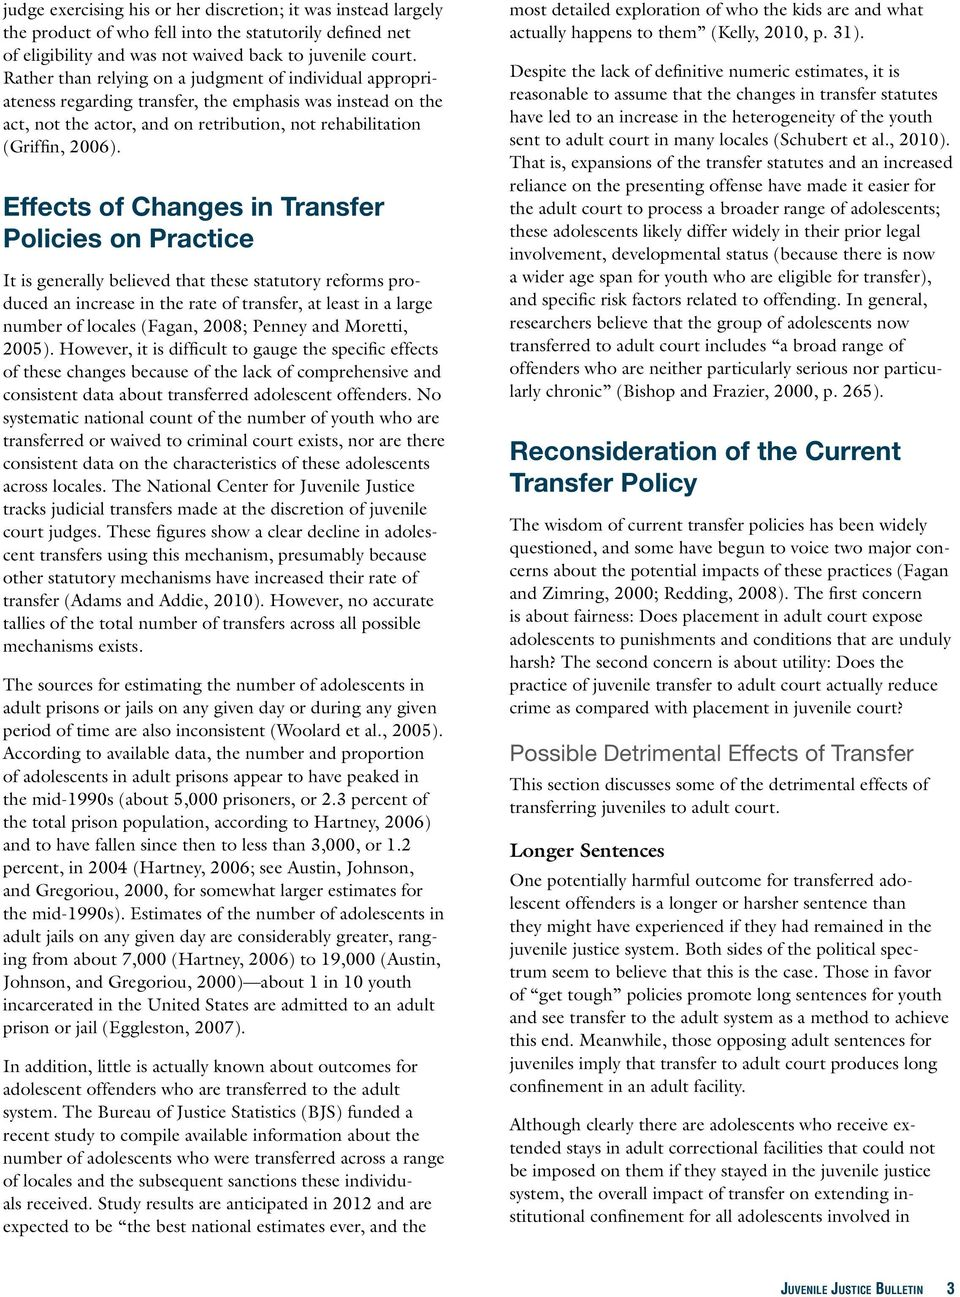 Effects of Changes in Transfer Policies on Practice It is generally believed that these statutory reforms produced an increase in the rate of transfer, at least in a large number of locales (Fagan,